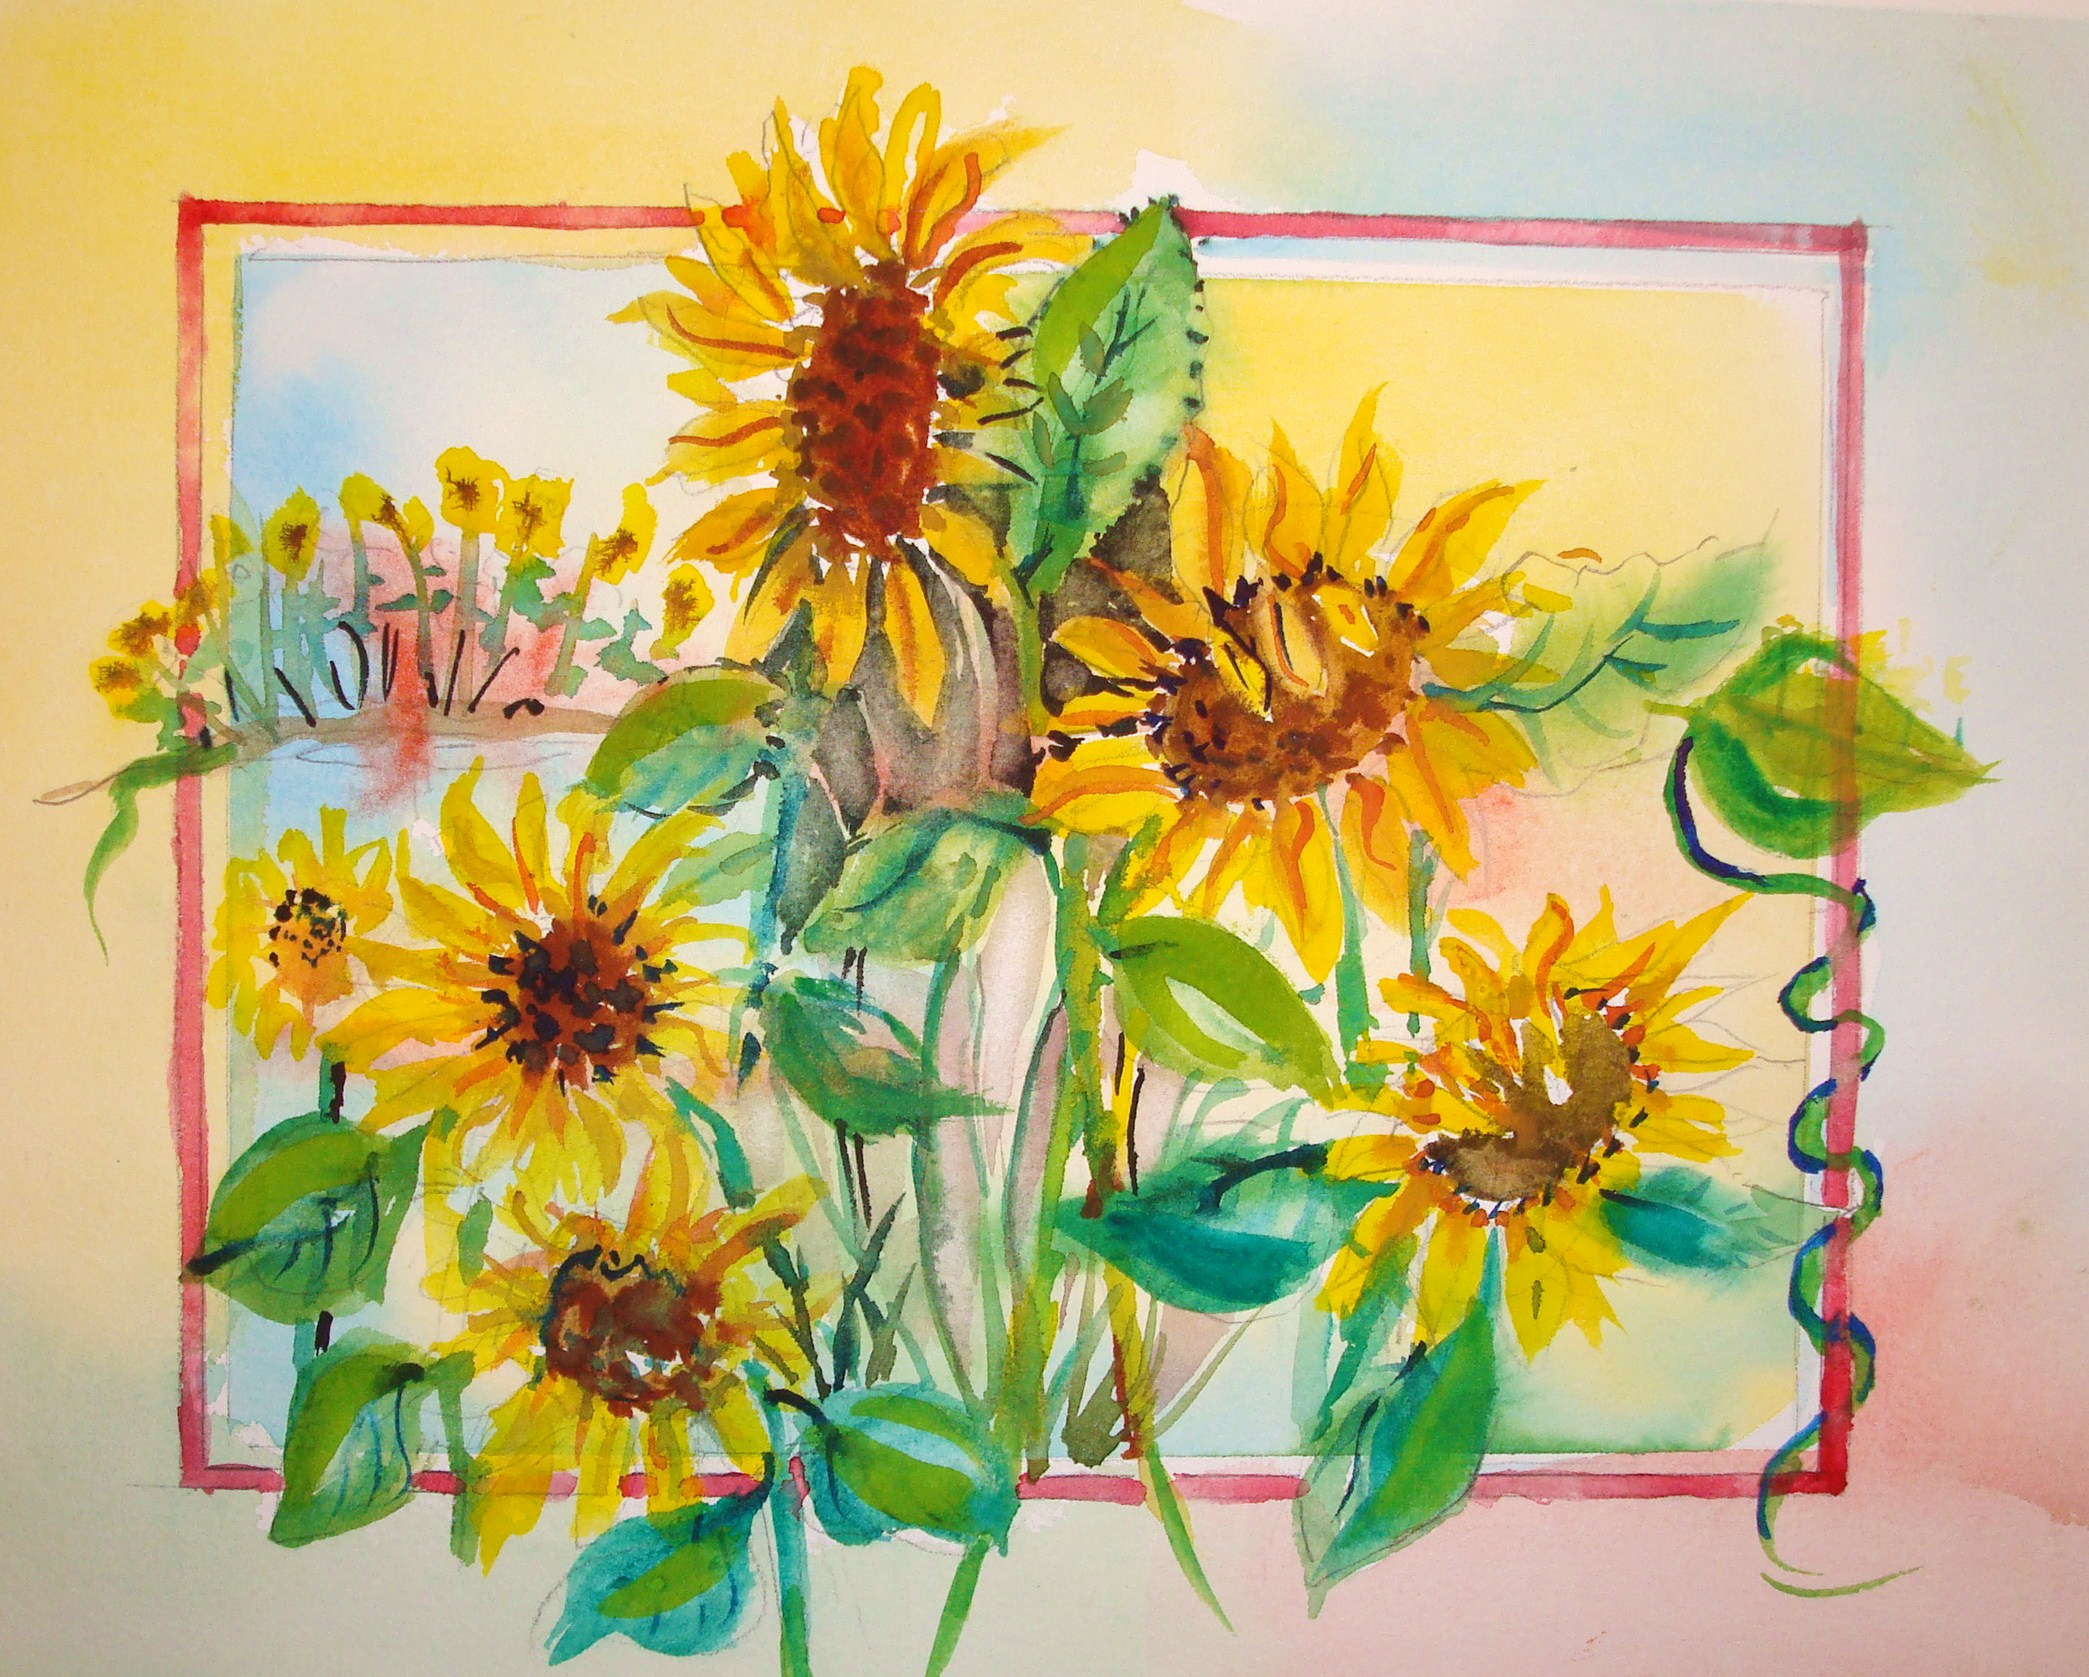 2089x1677 How To Paint Sunflowers In Watercolor (With Pictures)